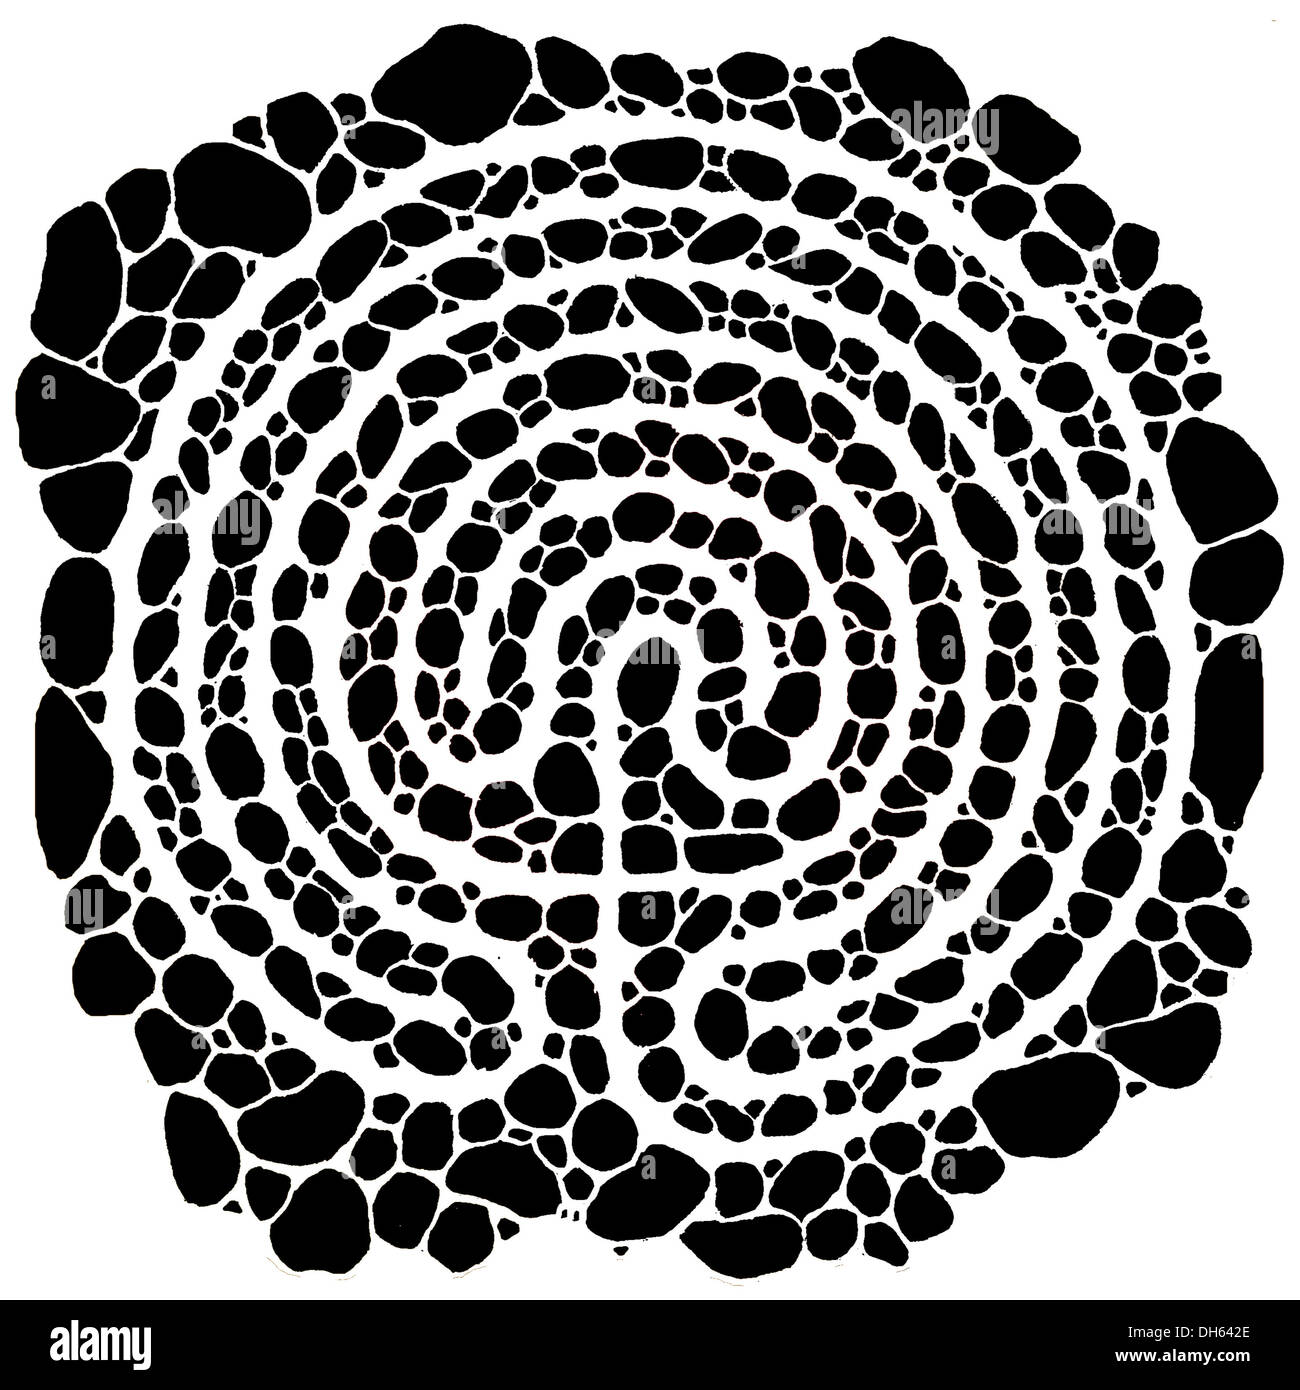 Black and white labyrinth stock photos black and white labyrinth the labyrinth symbolizes the life path black an white design stock image buycottarizona Image collections